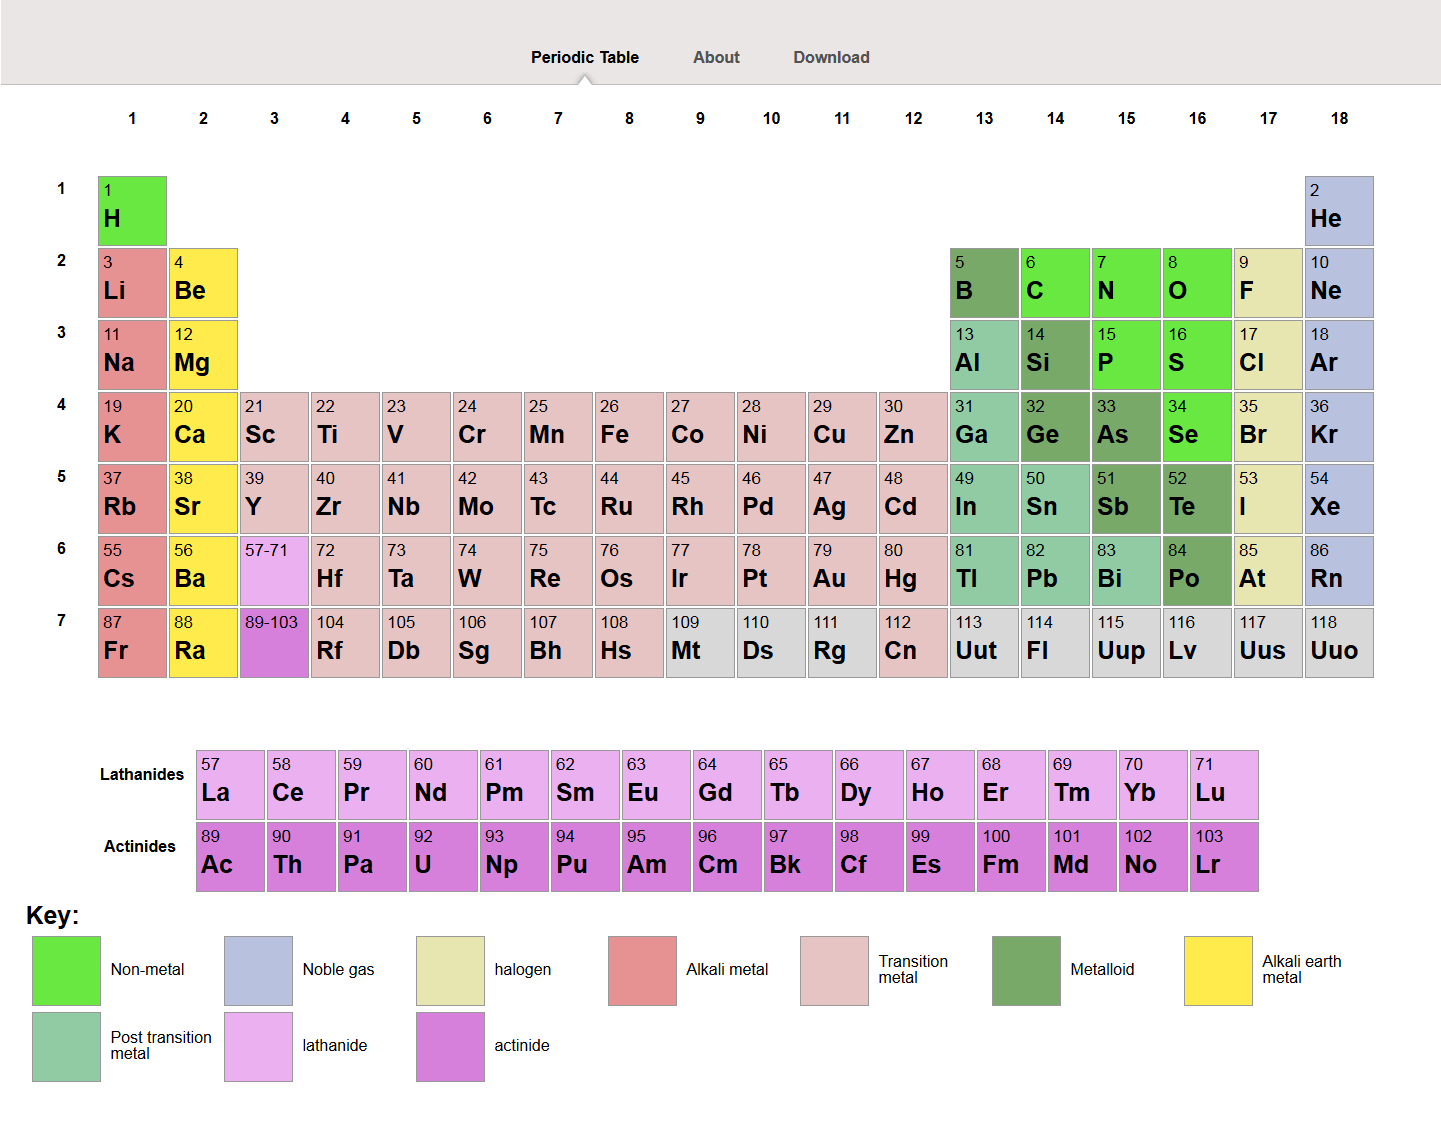 An image of Periodic Table